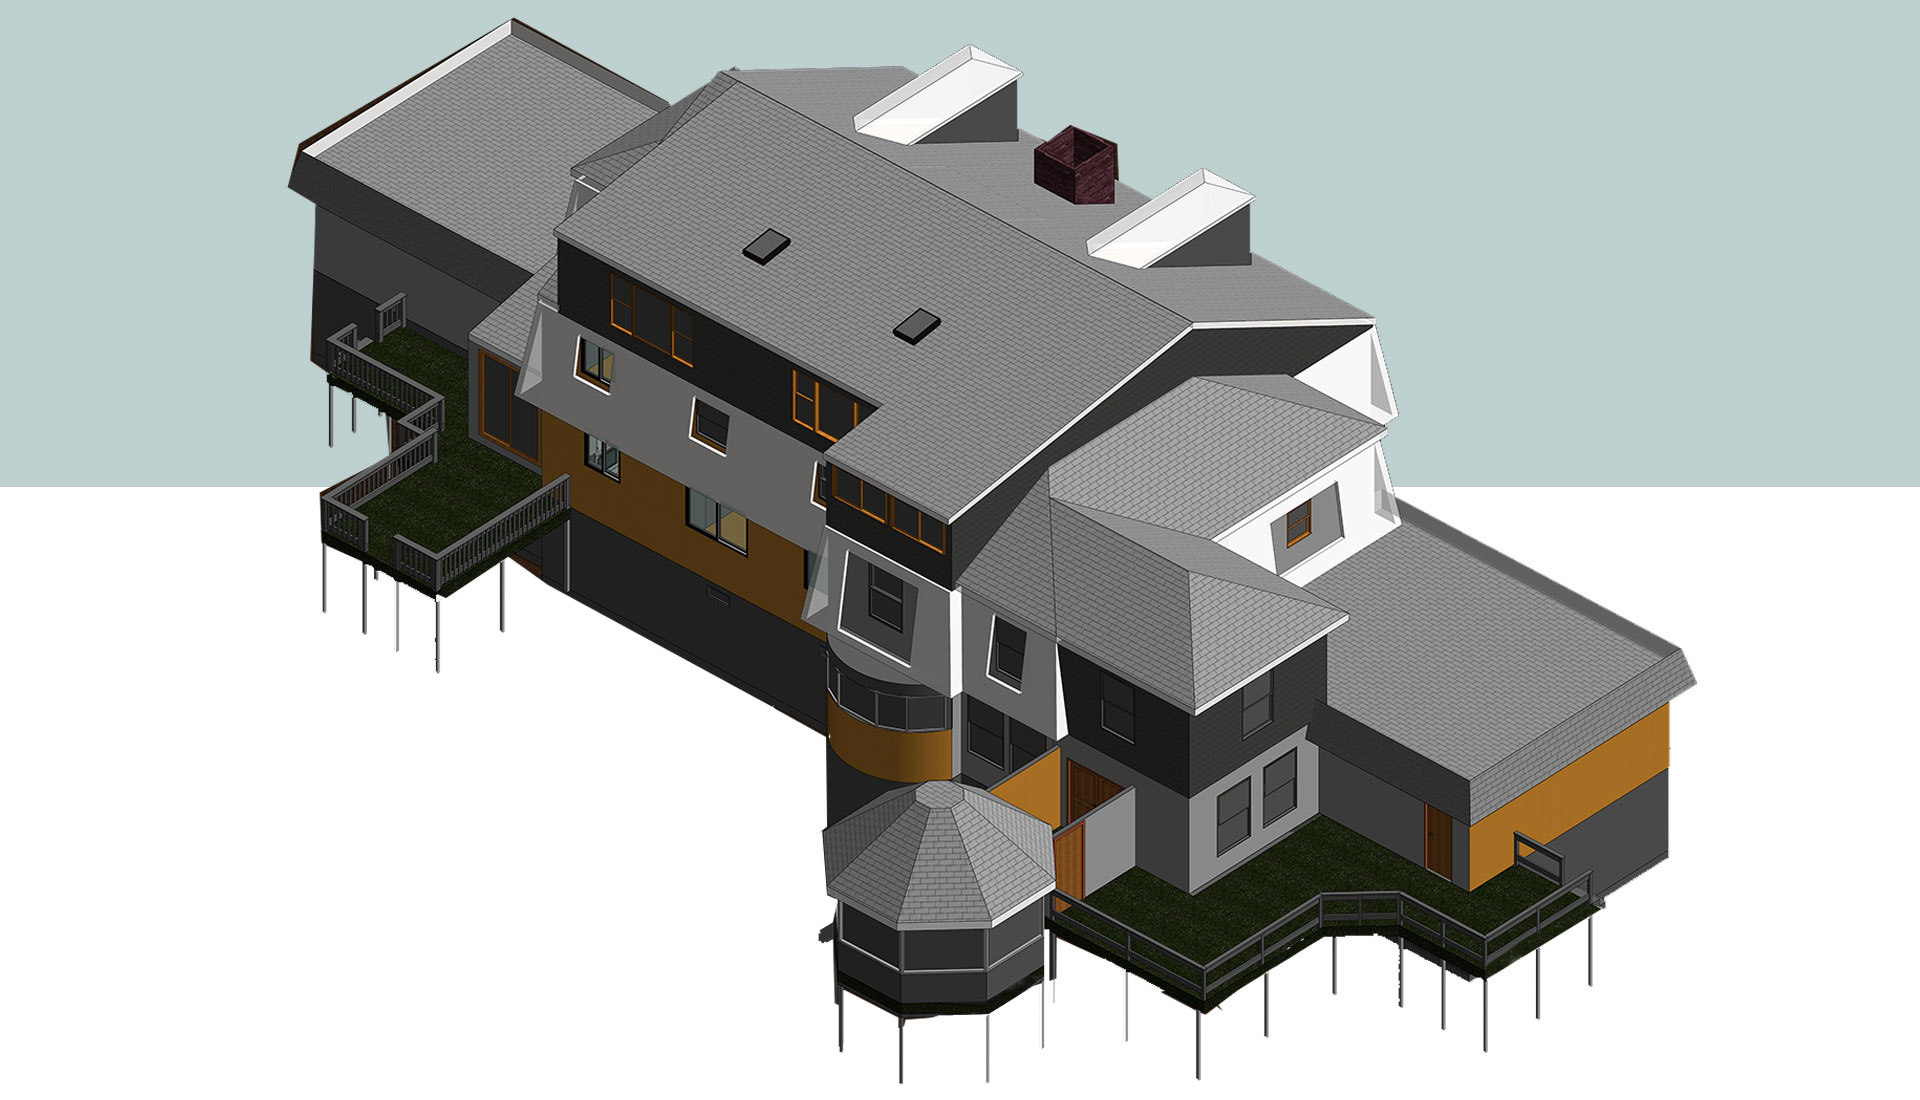 Detailed-Architectural-Revit-Model_Residential-Project_Modeling-Project-by-United-BIM